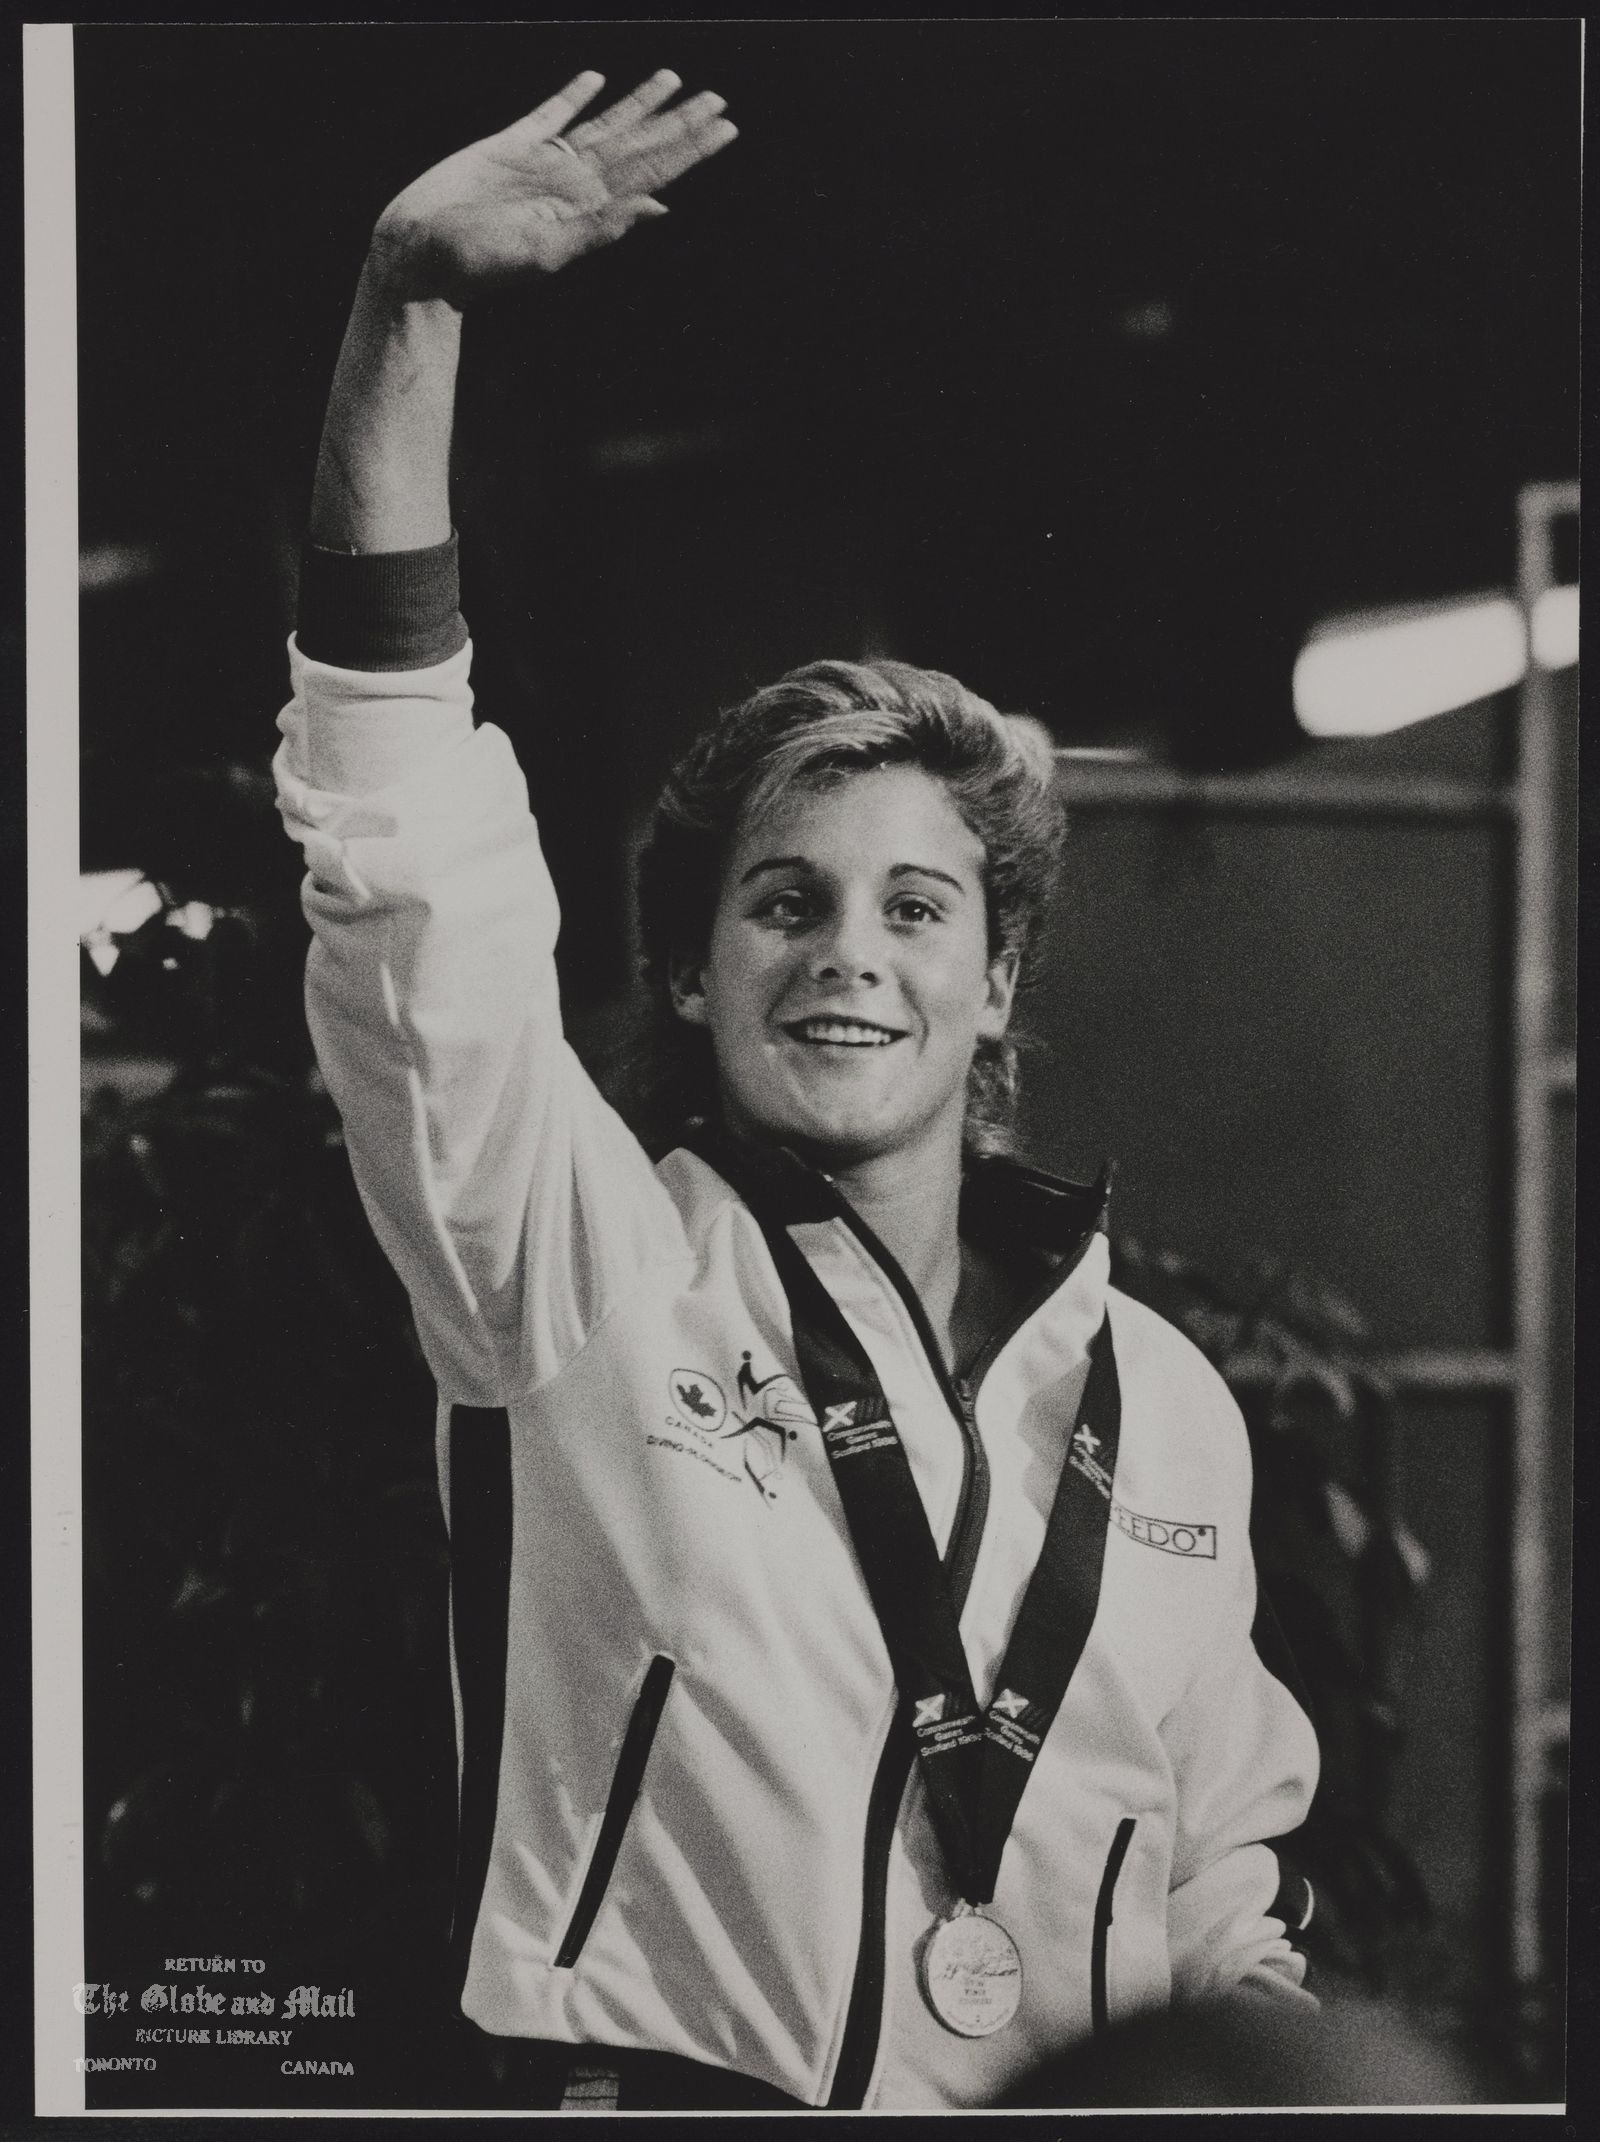 COMMONWEALTH GAMES EDINBURGH 1986 EDI10:SPECIAL FOR THE TORONTO GLOBE AND MAIL. EDINBURGH, SCOTLAND, JULY 28,-Canadian Debbie Fuller Waves to the crowd after the medal presentation in the Commonwealth Games Highboard diving final. REUTER rt/Zoran Milich 1986